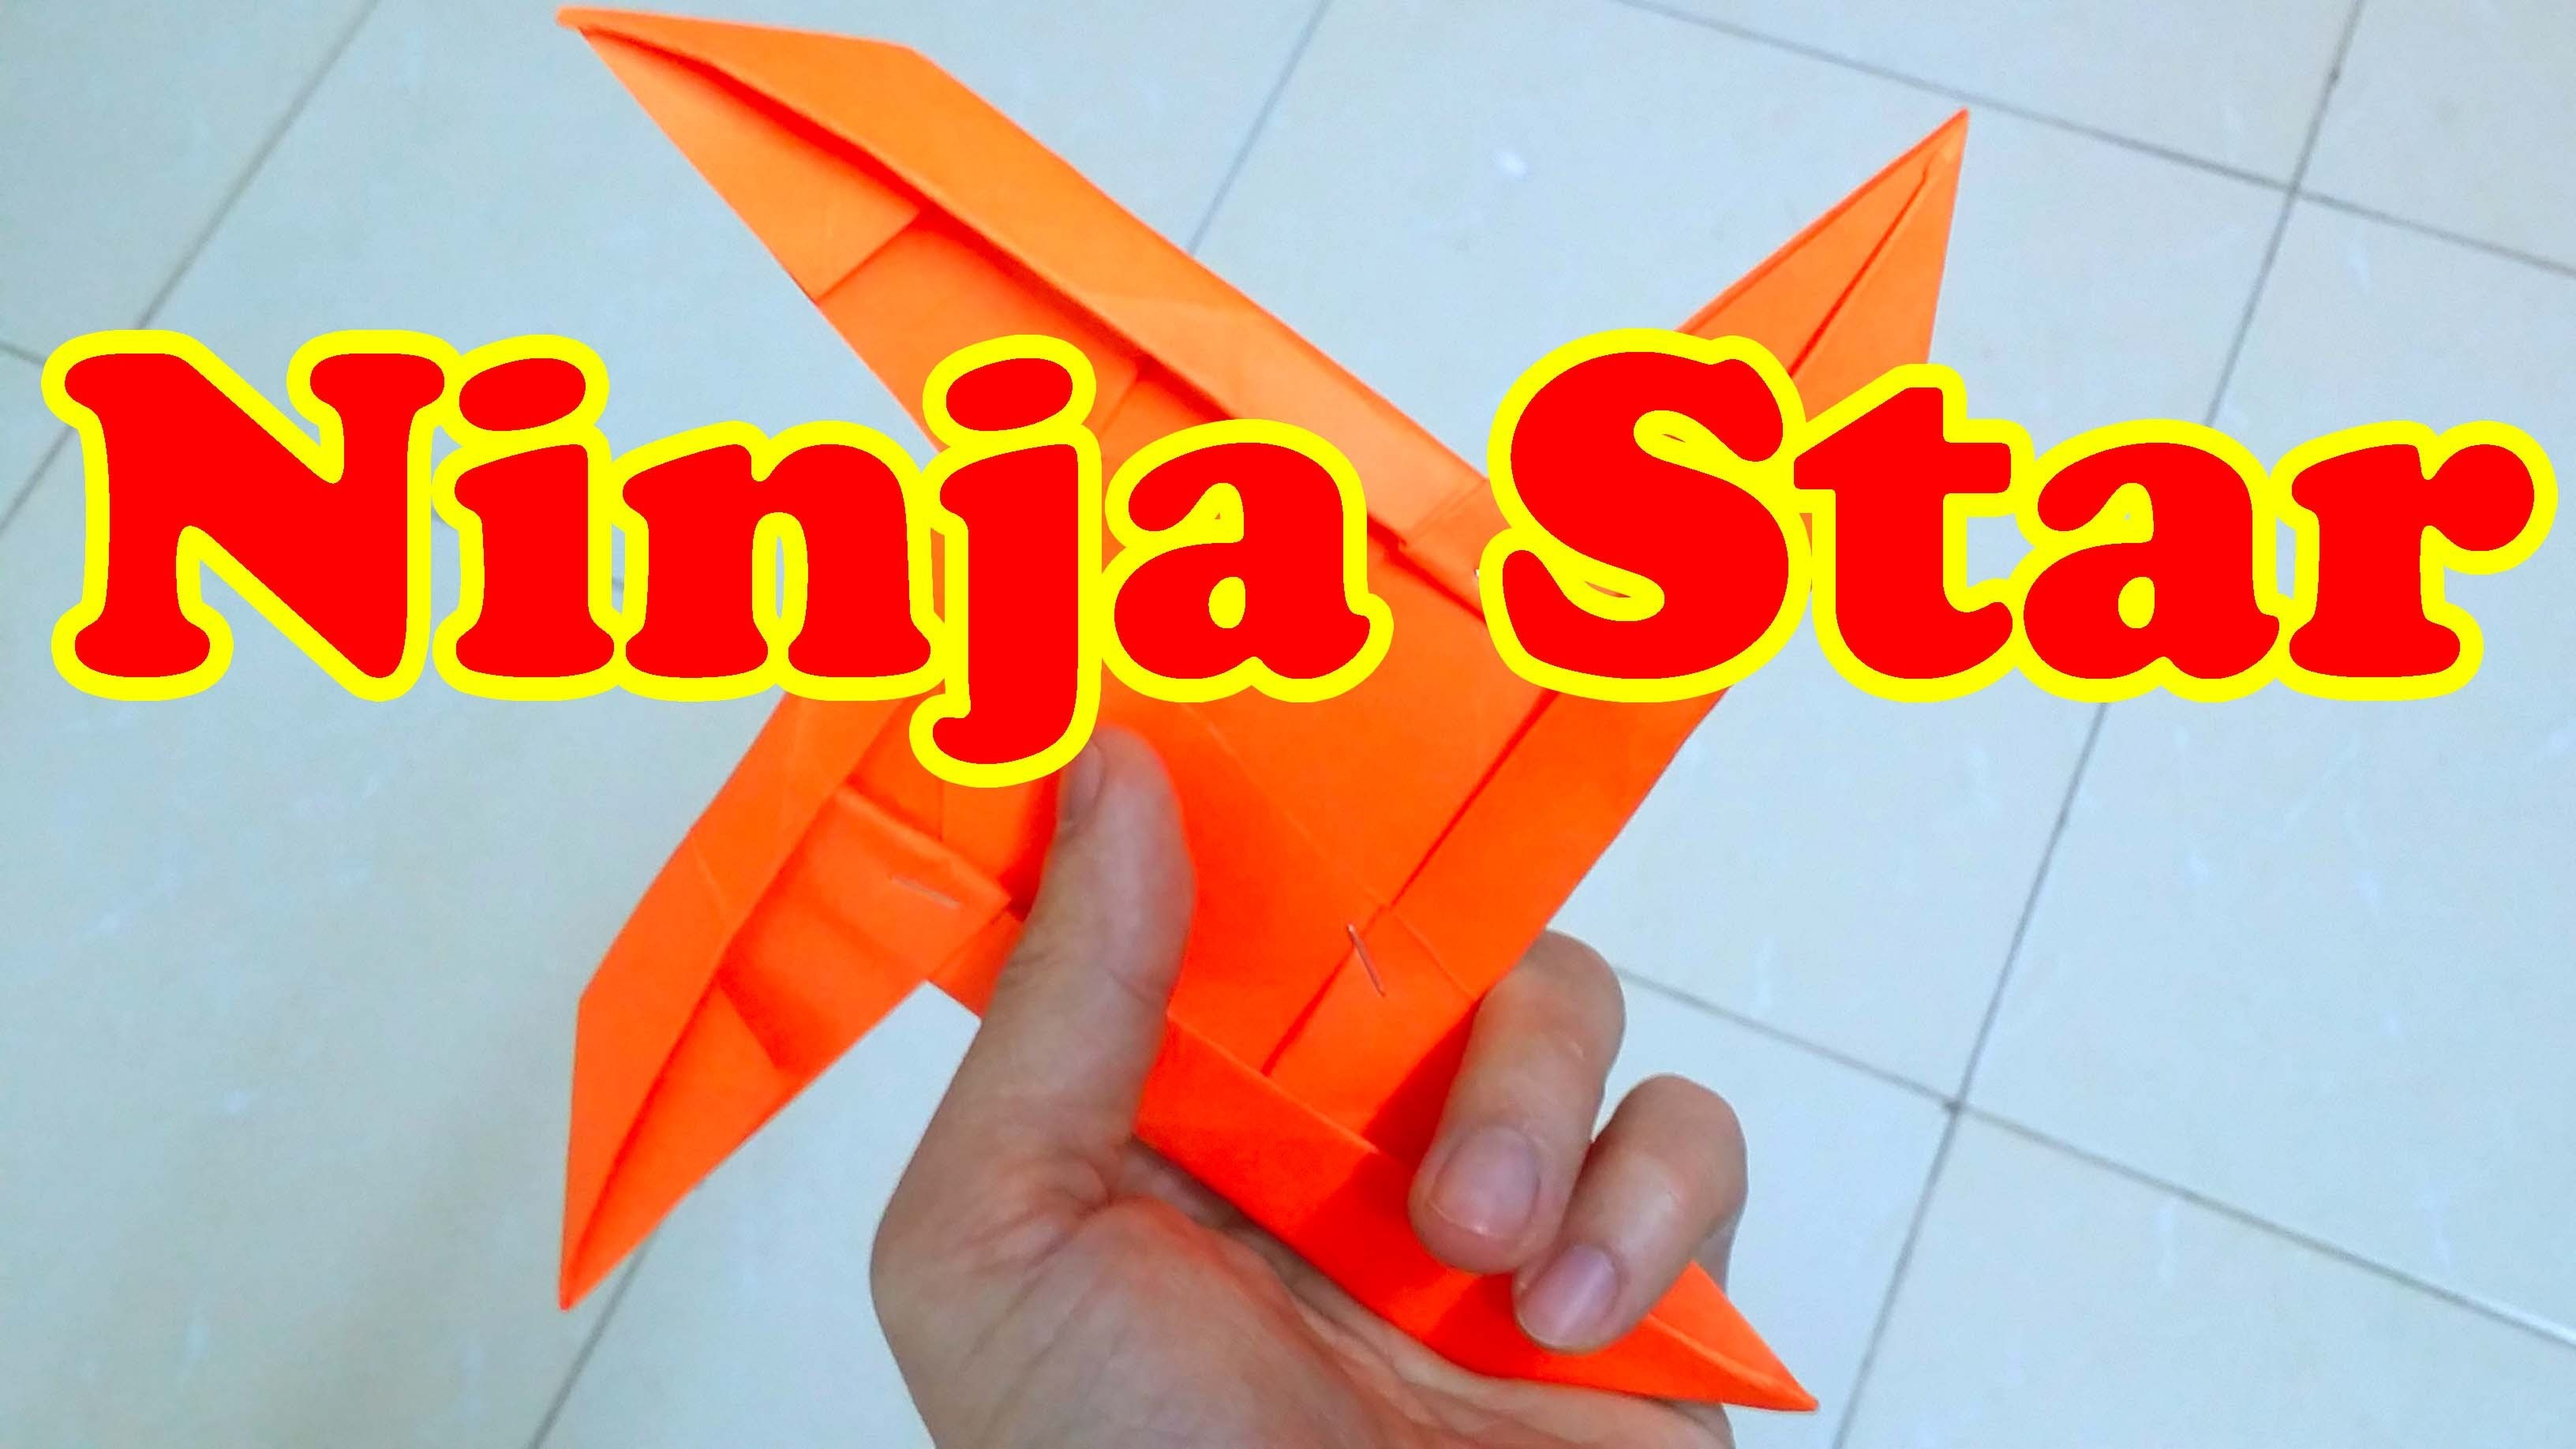 How To Make a Paper Ninja Star 4 Pointed | Origami